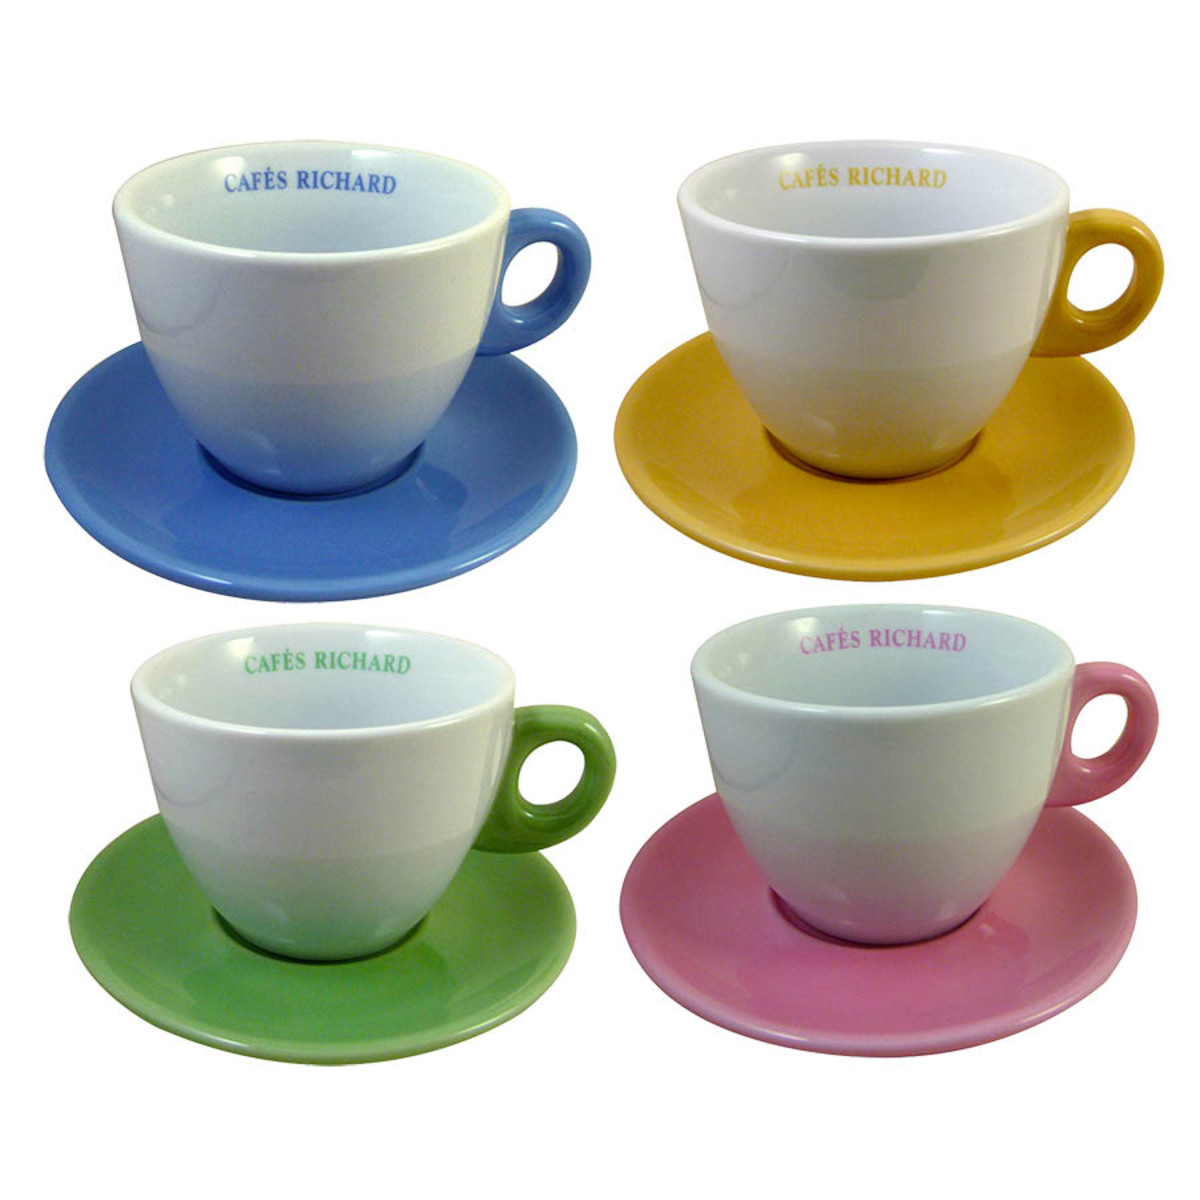 Set de 4 tasses et soucoupes chocolat couleurs assorties Cafés Richard